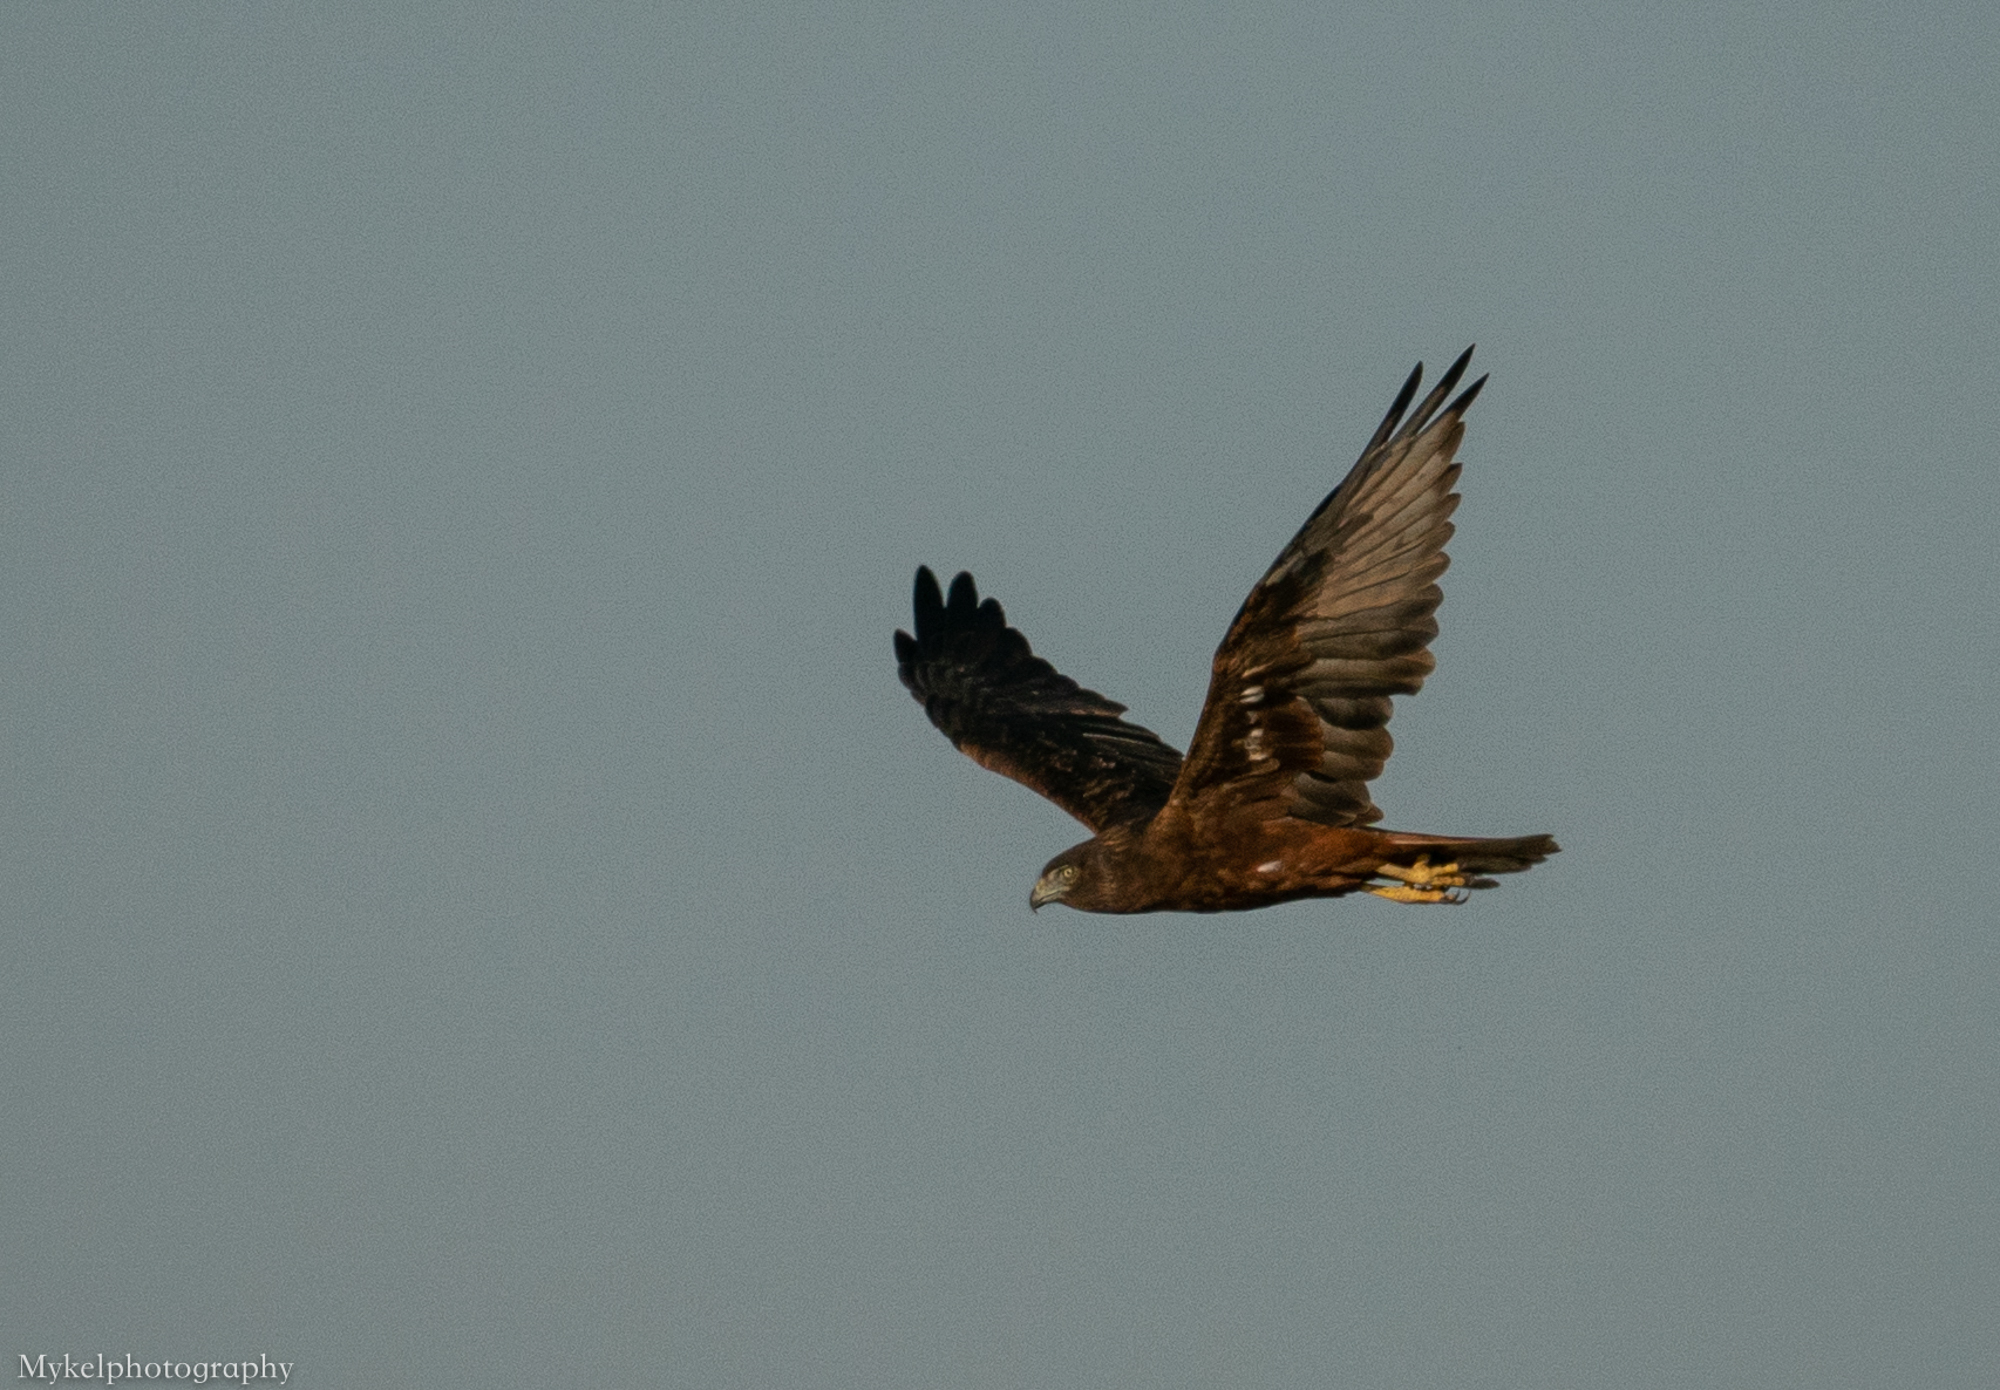 Swamp Harrier, Circus approximans Accipitridae